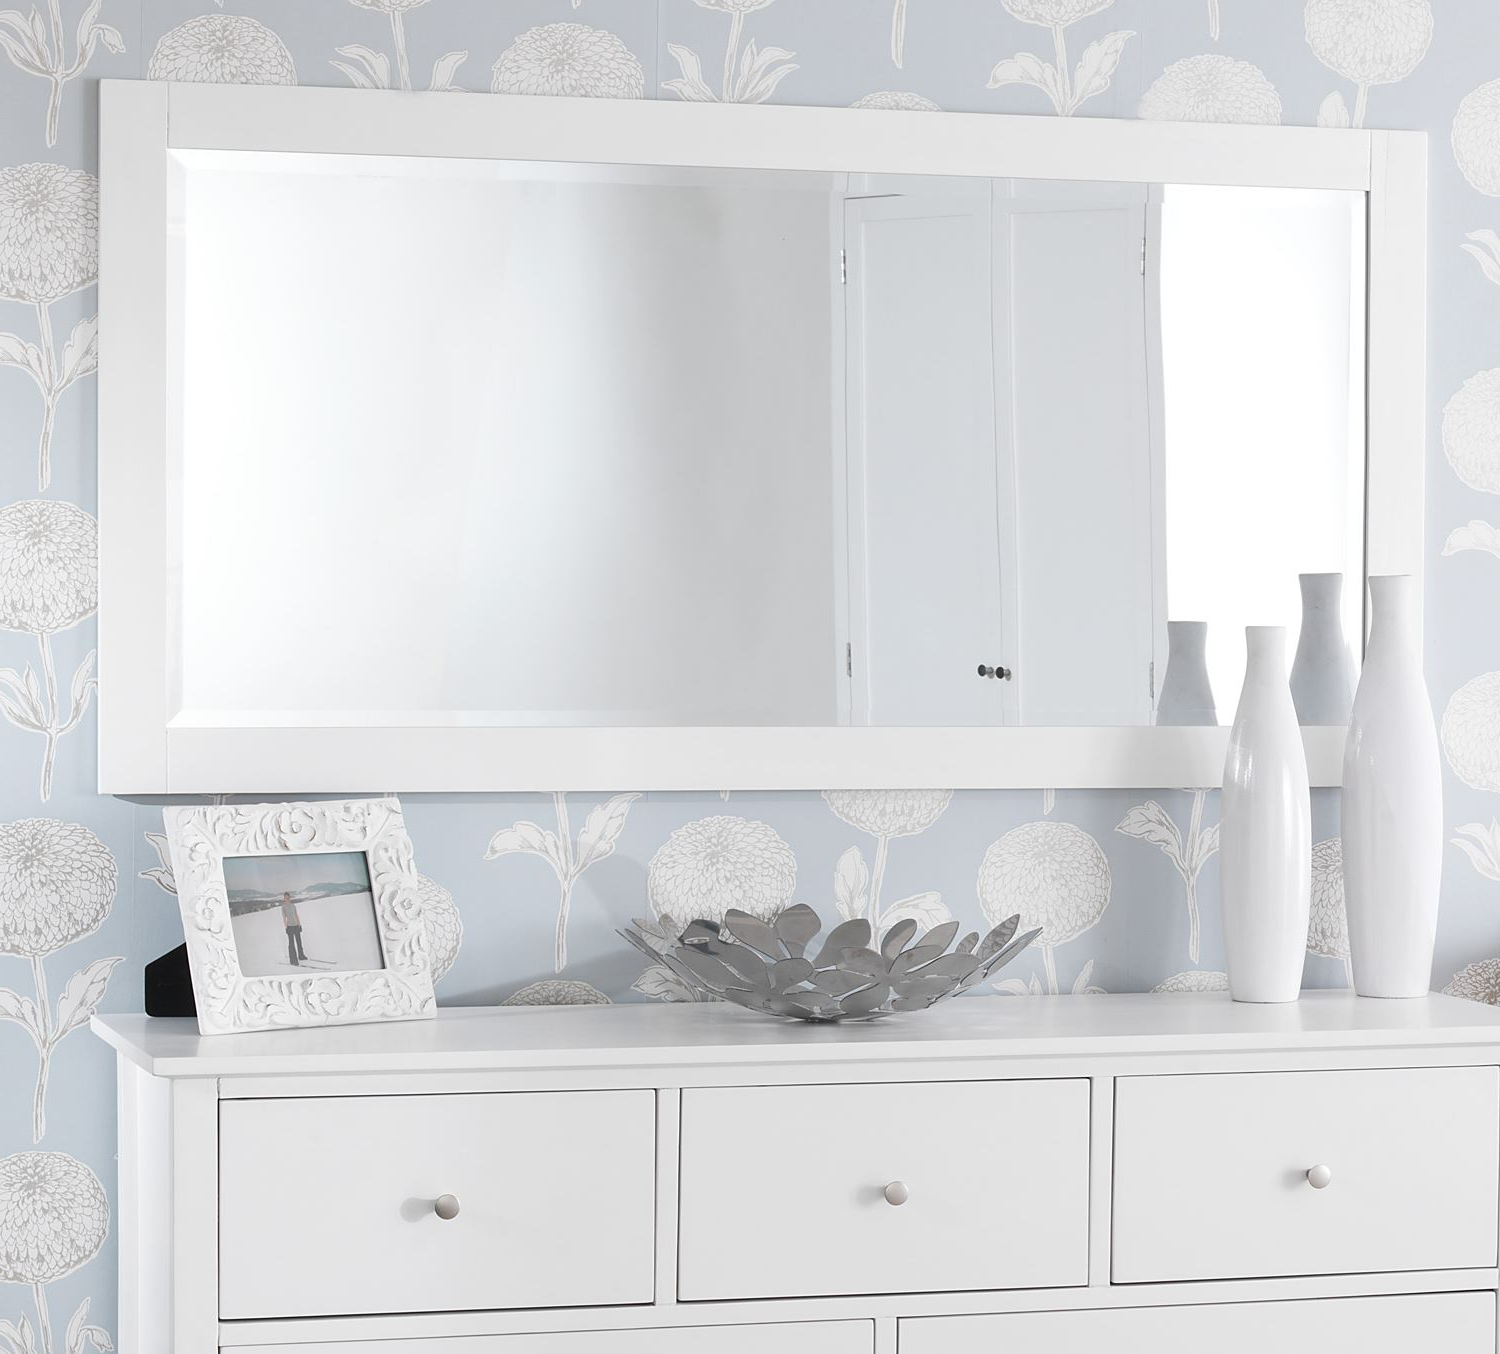 Popular Wunderbar White Wall Mirrors Large Vanities Magnifying Cust Depot Throughout White Long Wall Mirrors (View 2 of 20)